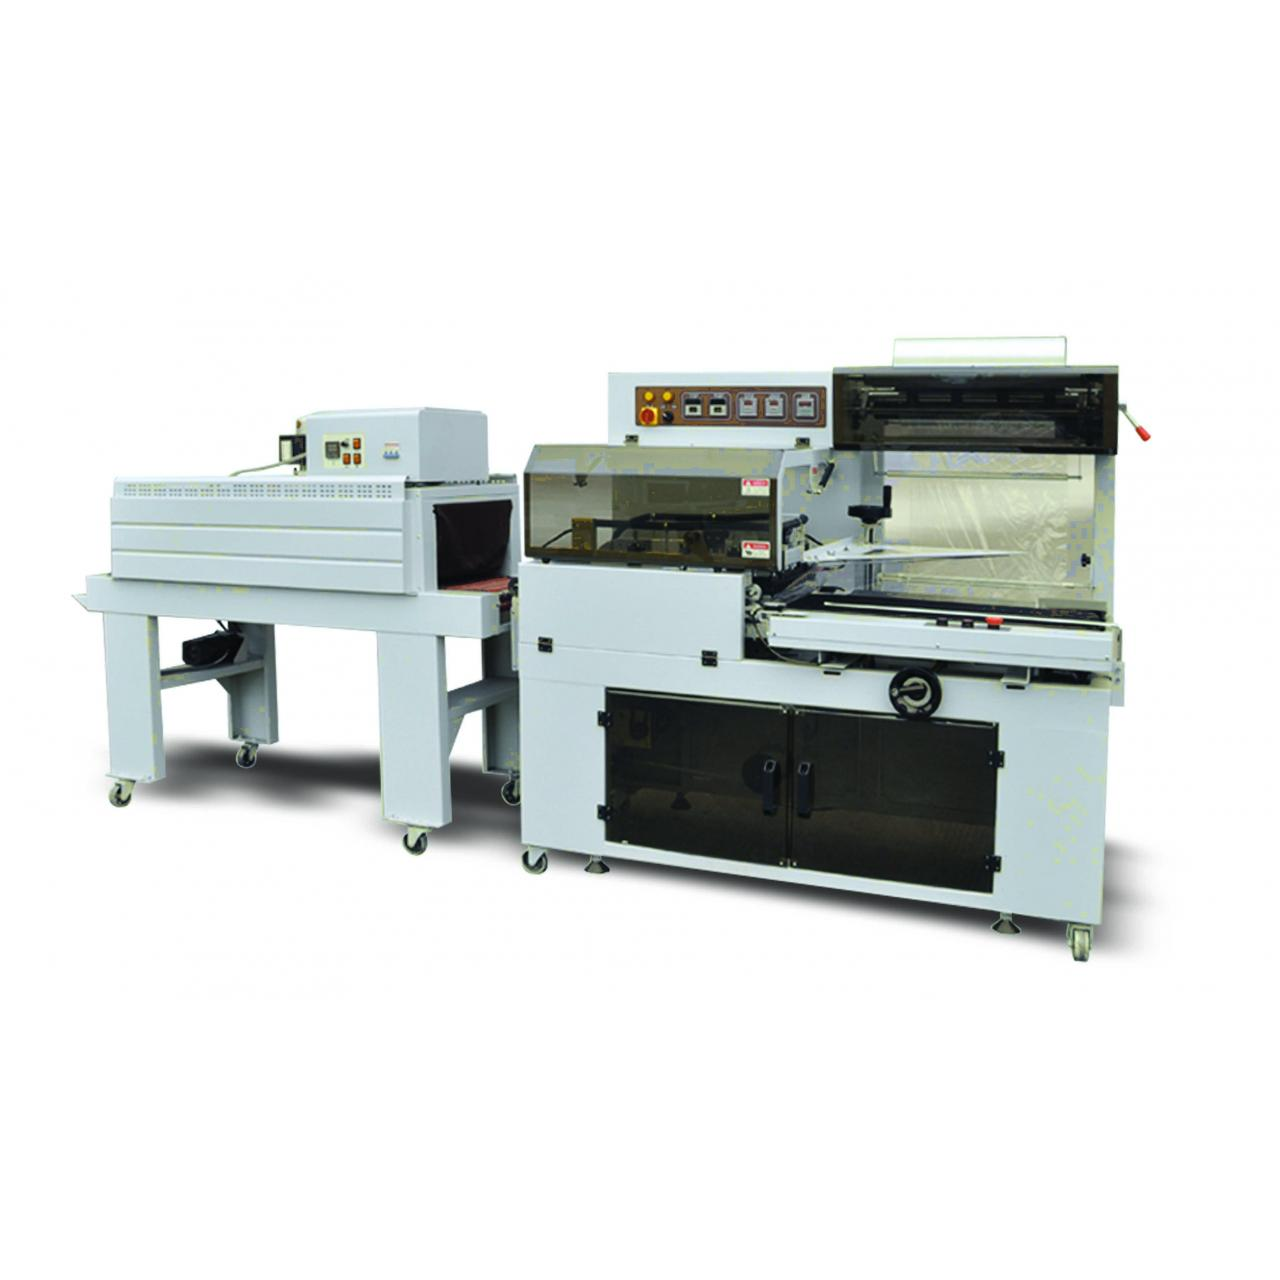 PTH-560 Automatic shrink packaging machine